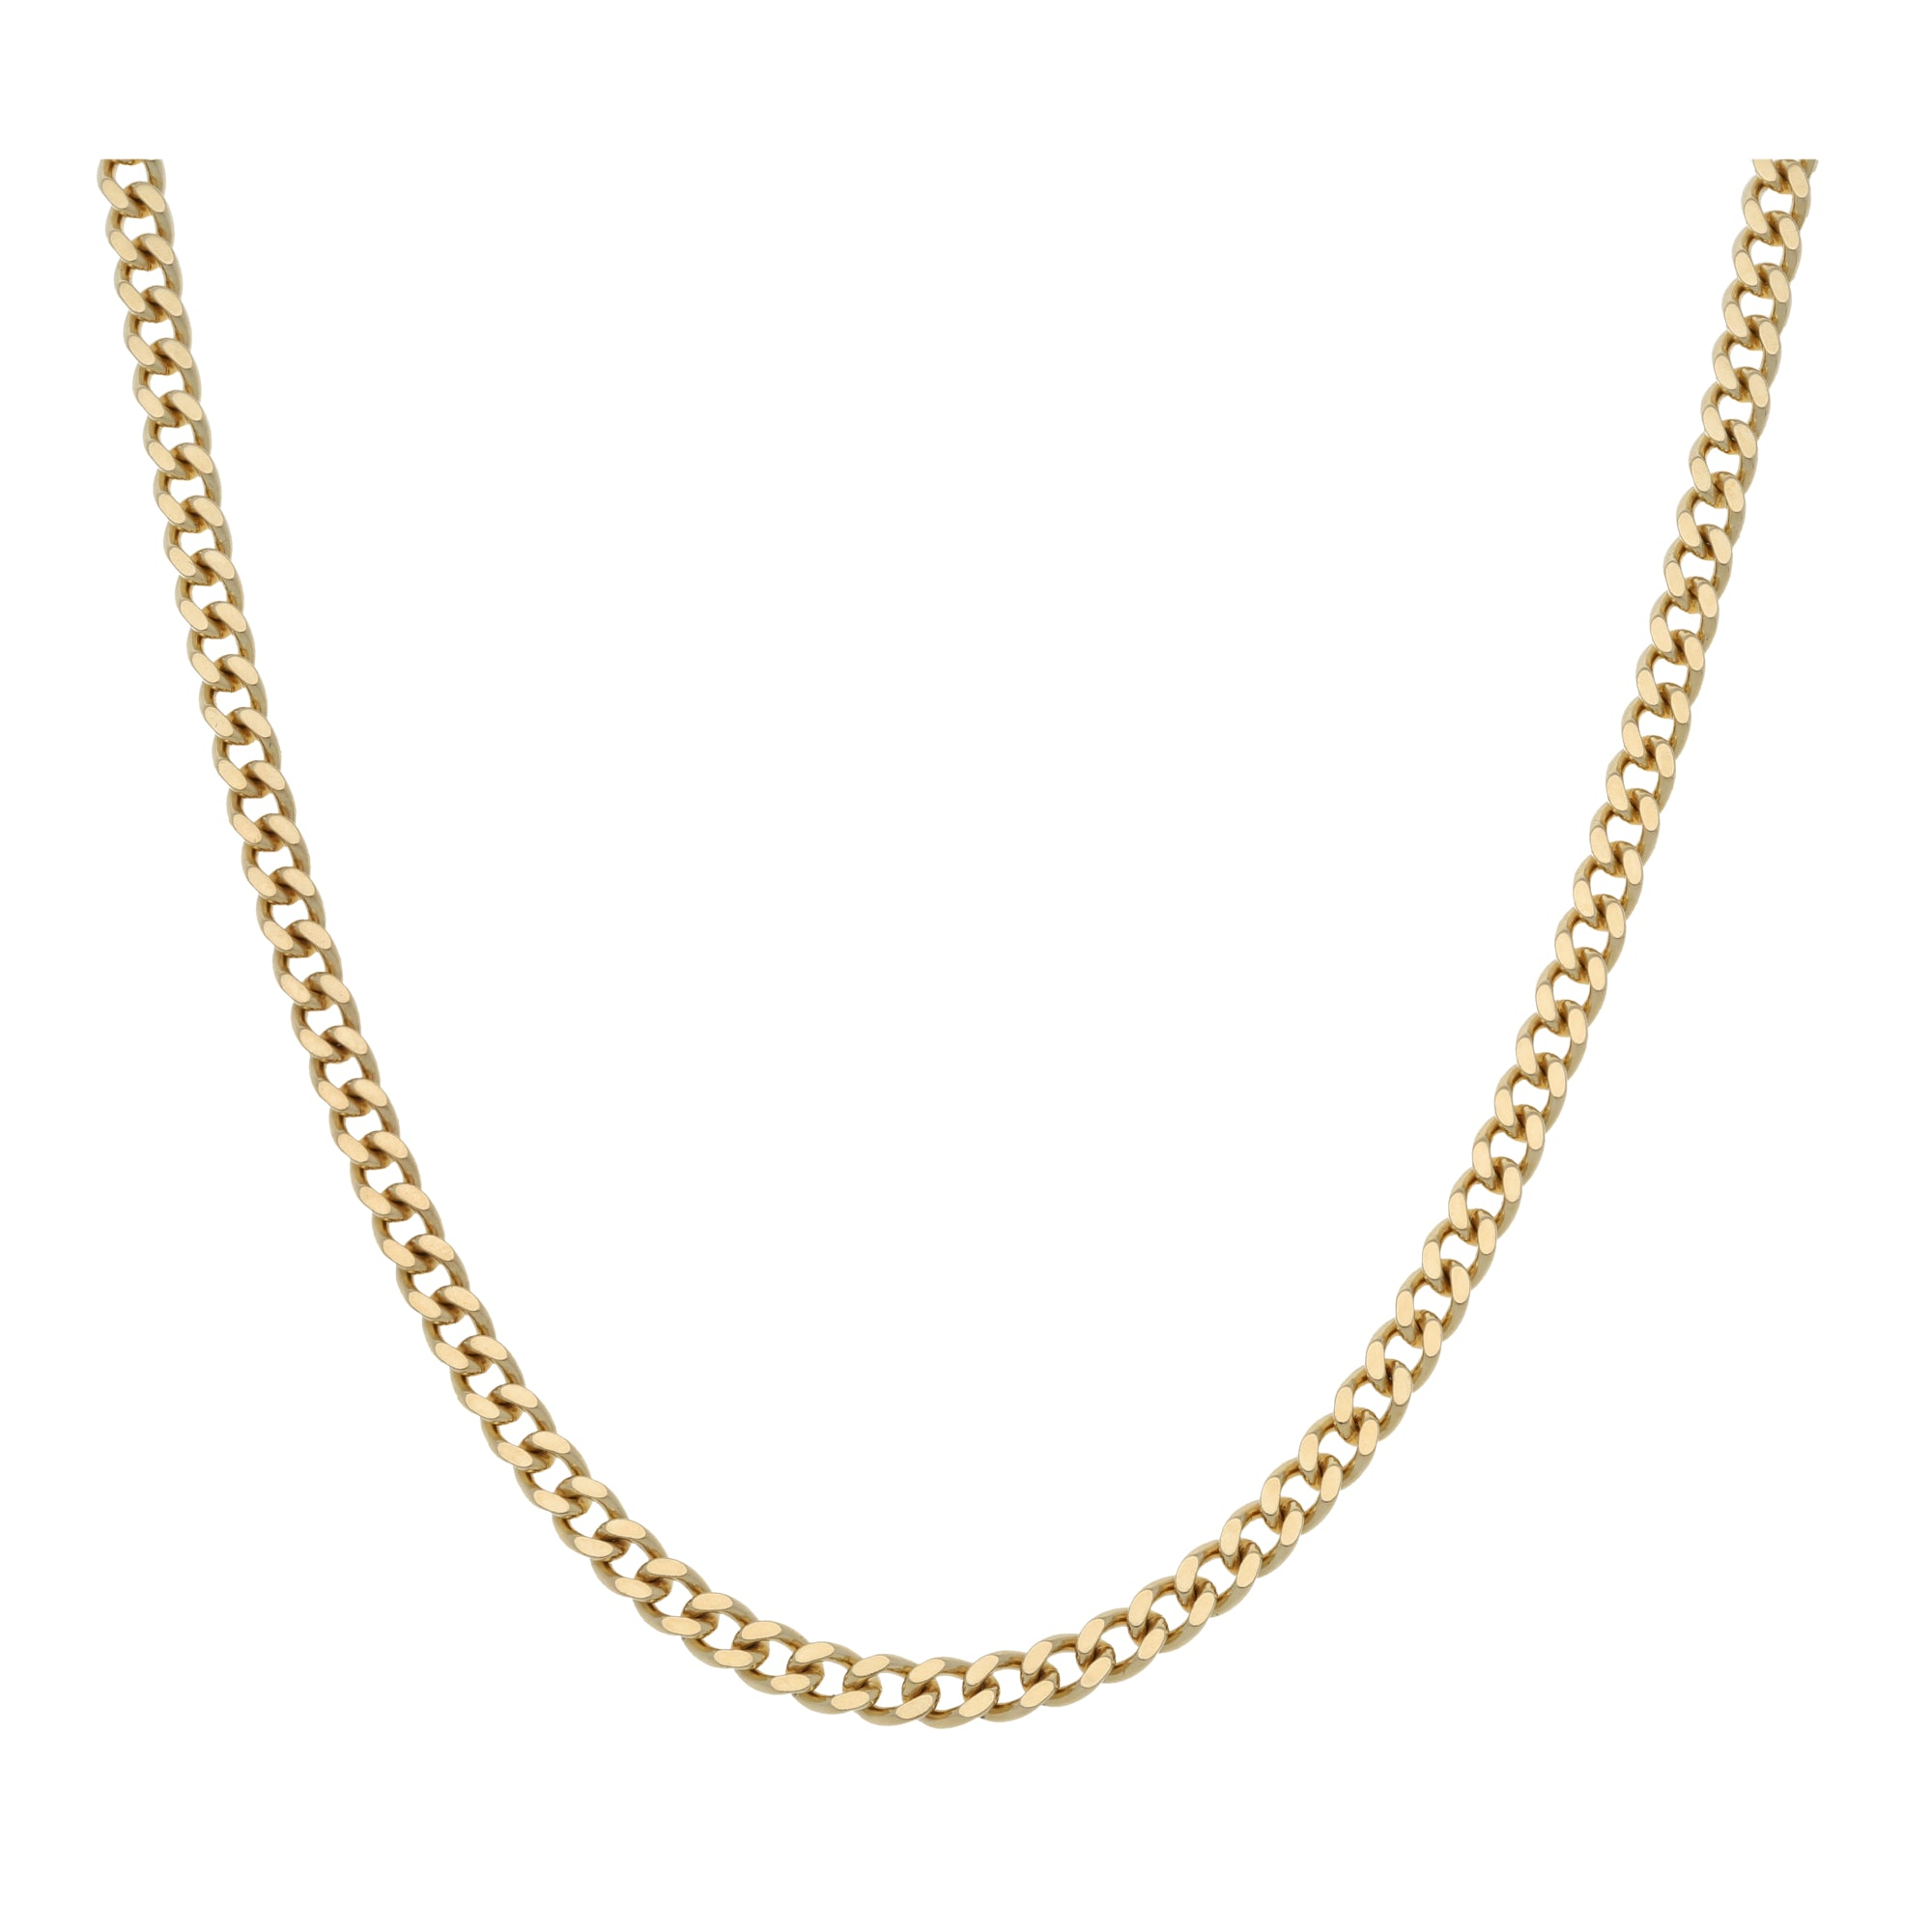 9ct Gold Unisex Curb Chain 24